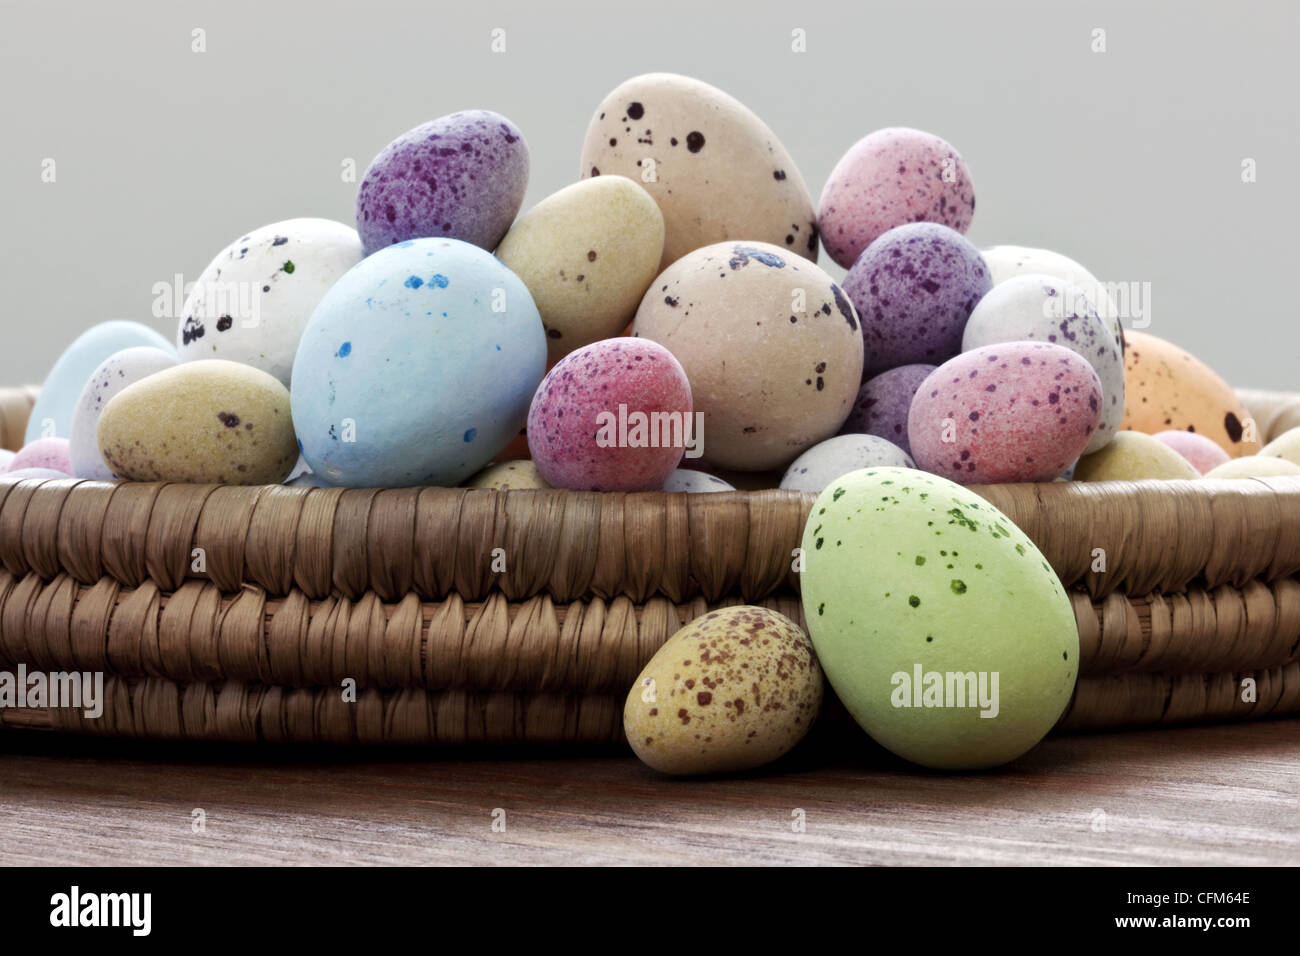 Still life photo of speckled candy covered chocolate easter eggs in a wicker basket on a rustic wooden table. - Stock Image